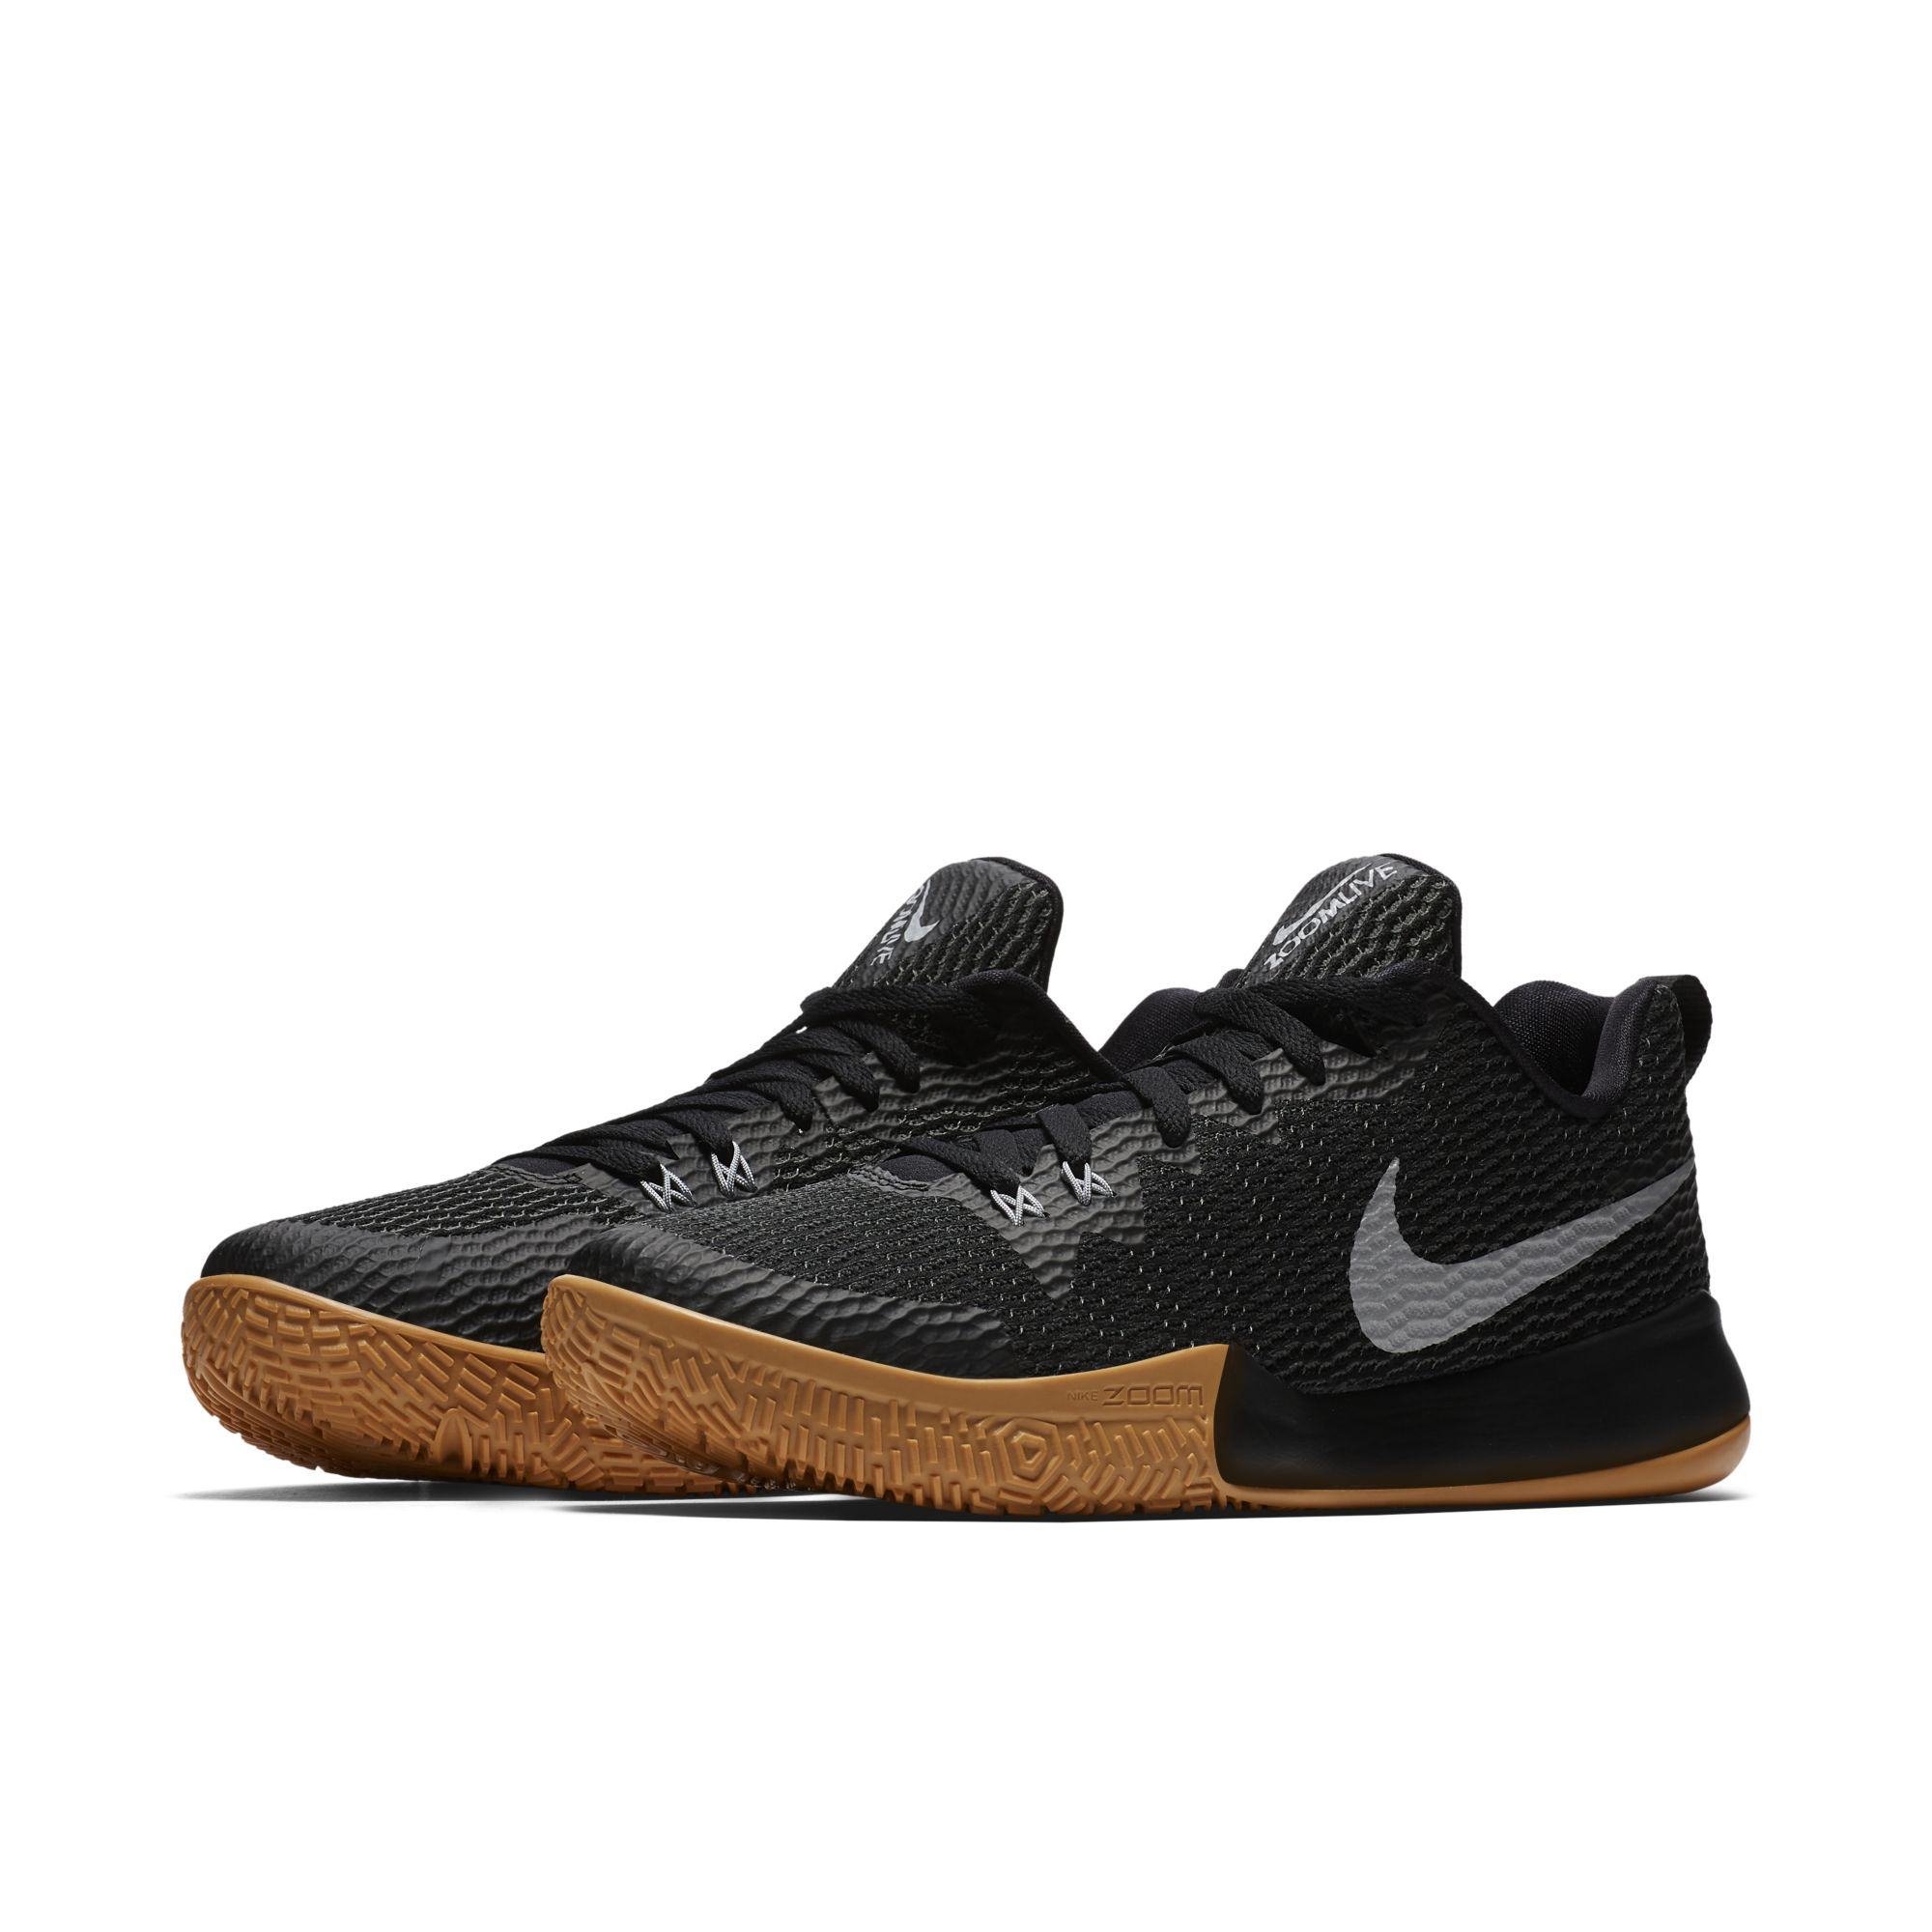 a5c9005a2f73 Nike-Zoom-Live-2-Black-Gum-2 - WearTesters